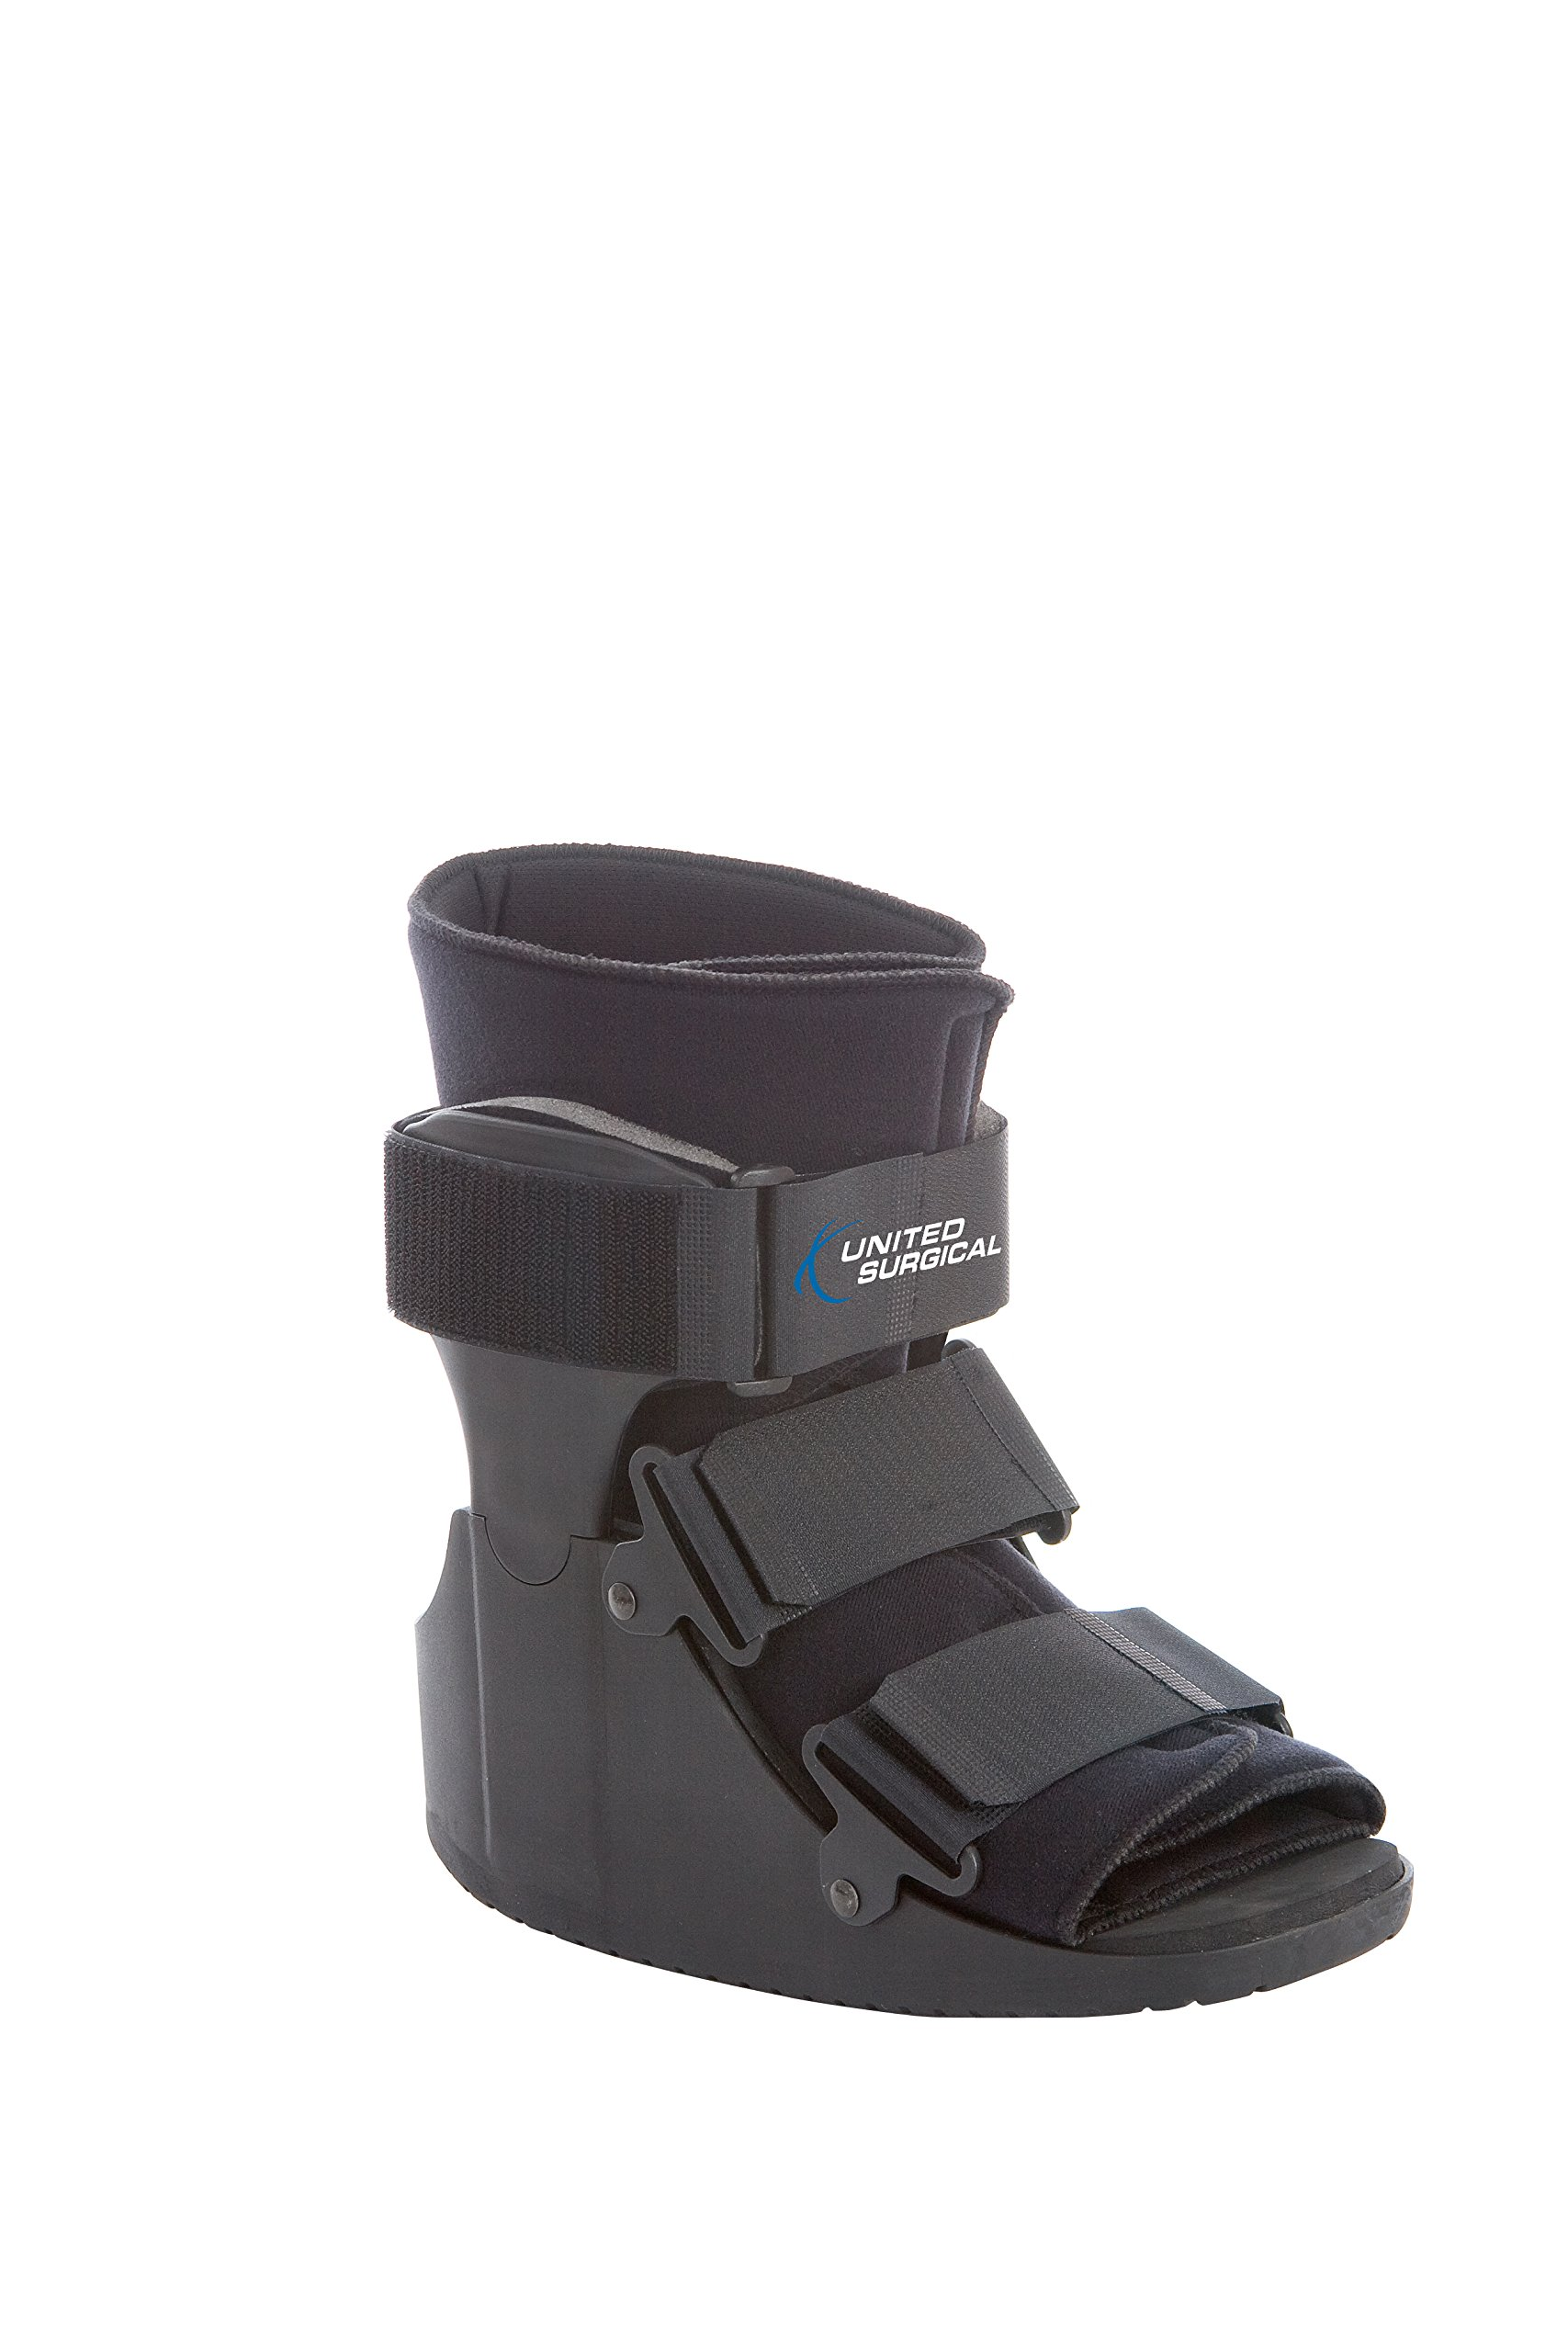 United Surgical Short Cam Walker Fracture Boot, Small